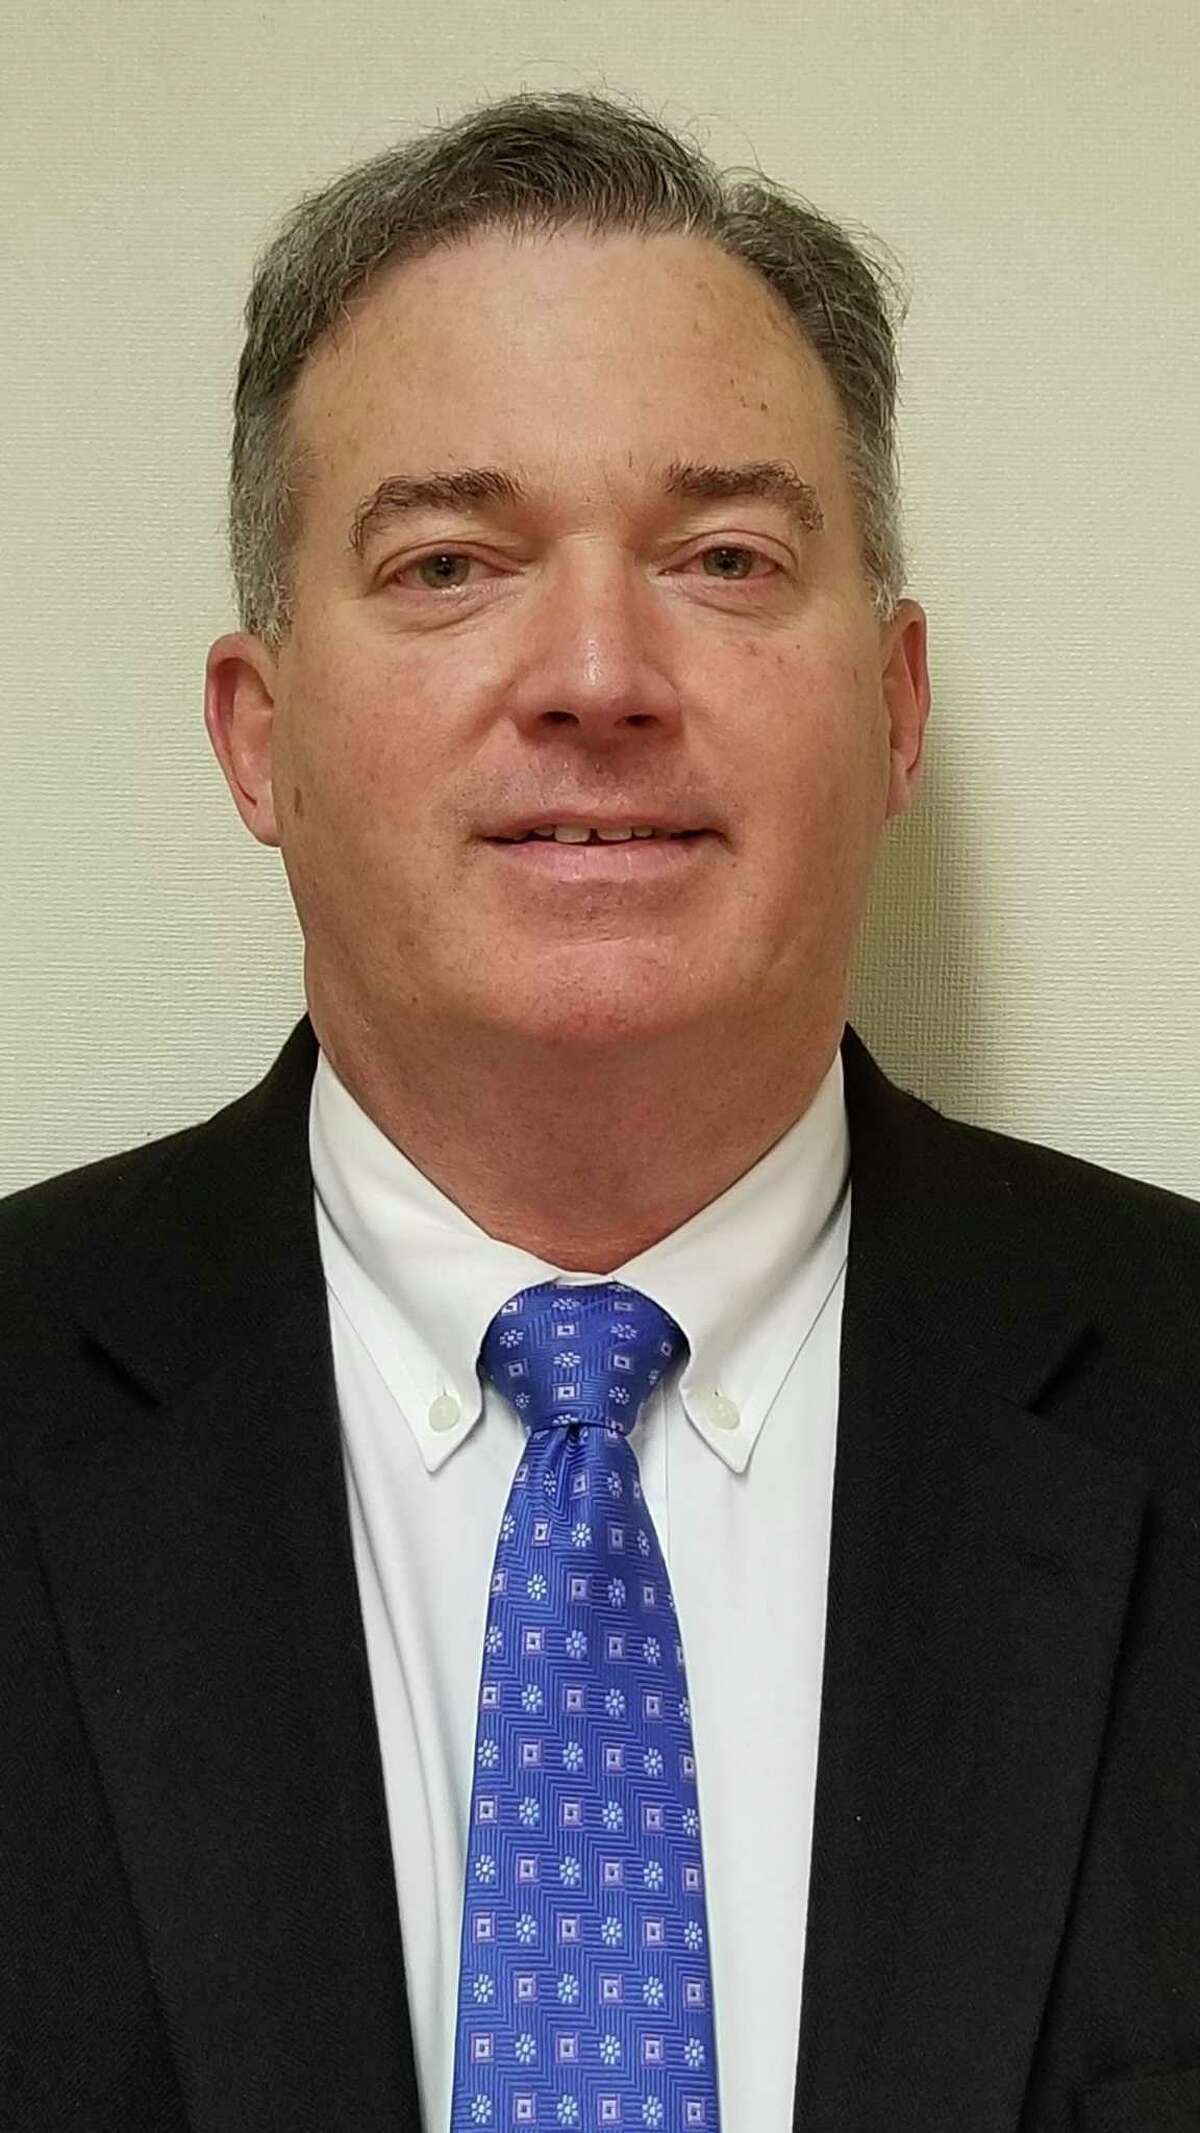 Greenwich Public Schools Superintendent Toni Jones has appointed Sean O'Keefe as chief operating oficer, effective Dec. 16. O'Keefe will replace Lorianne O'Donnell, who accepted a position at Abilis. The transition will take place mid-November.